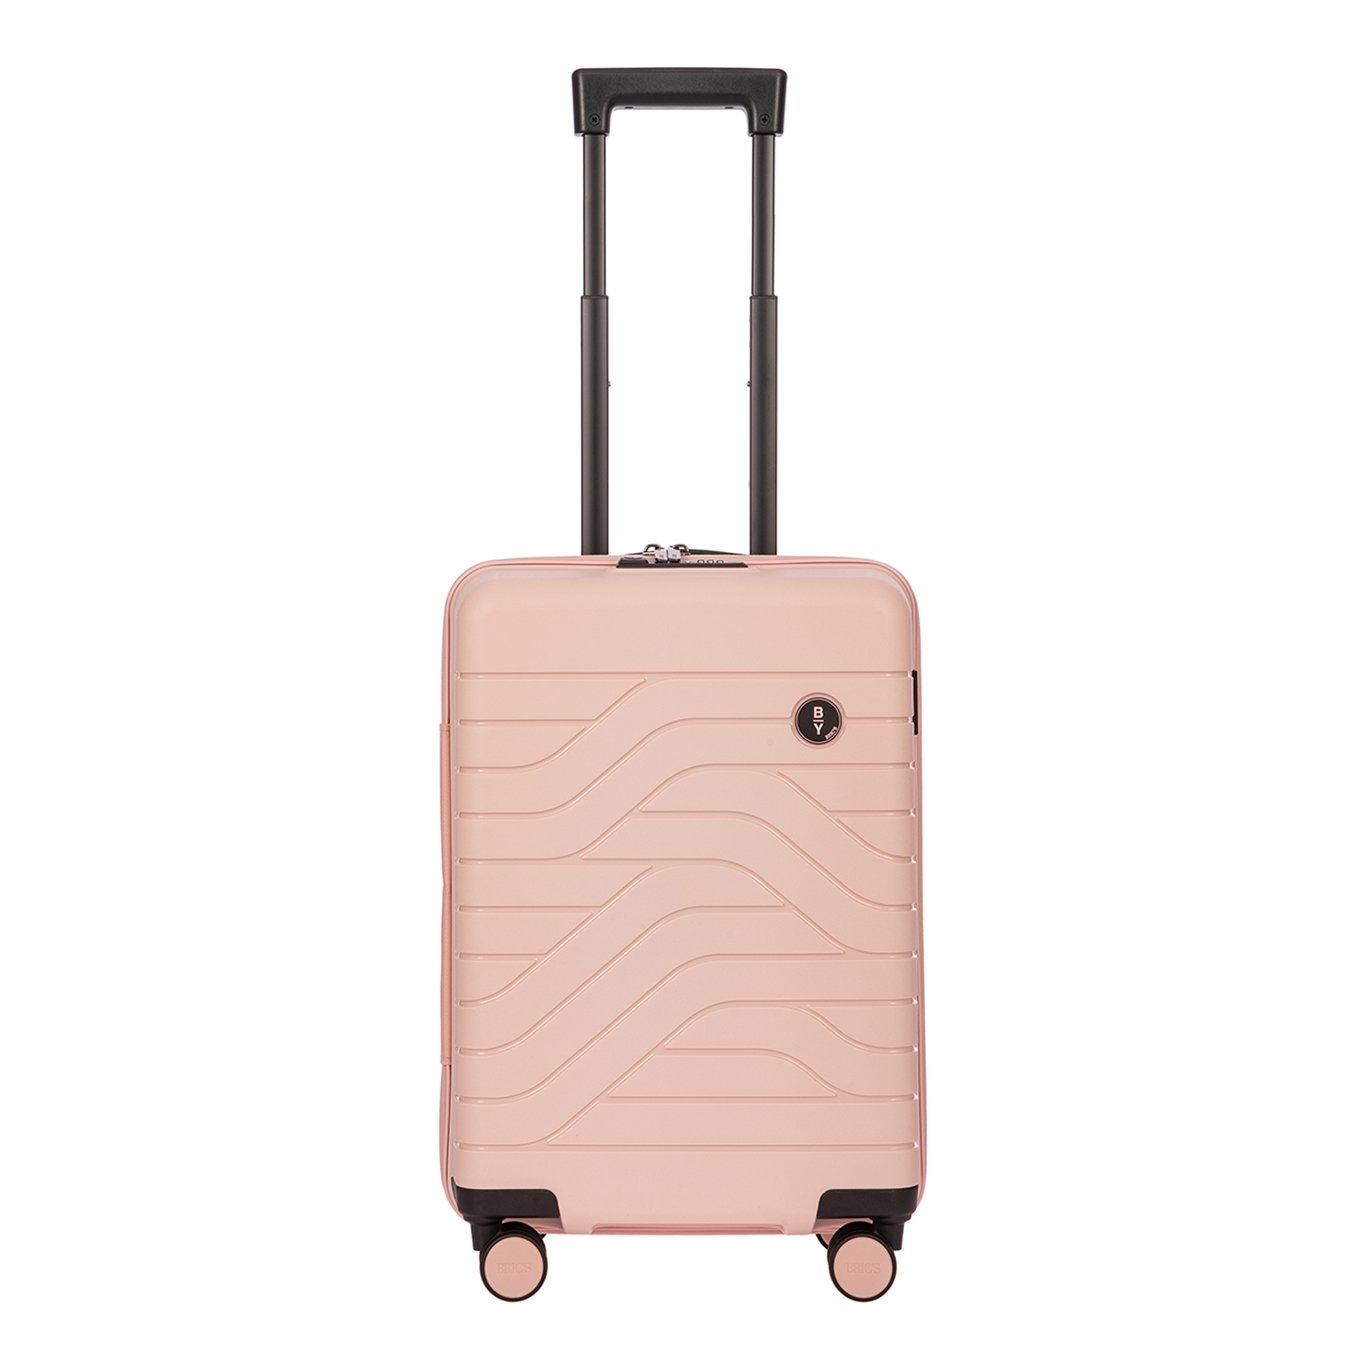 Bric&apos;s Ulisse Trolley 55 USB pearl pink Harde Koffer <br/></noscript><img class=